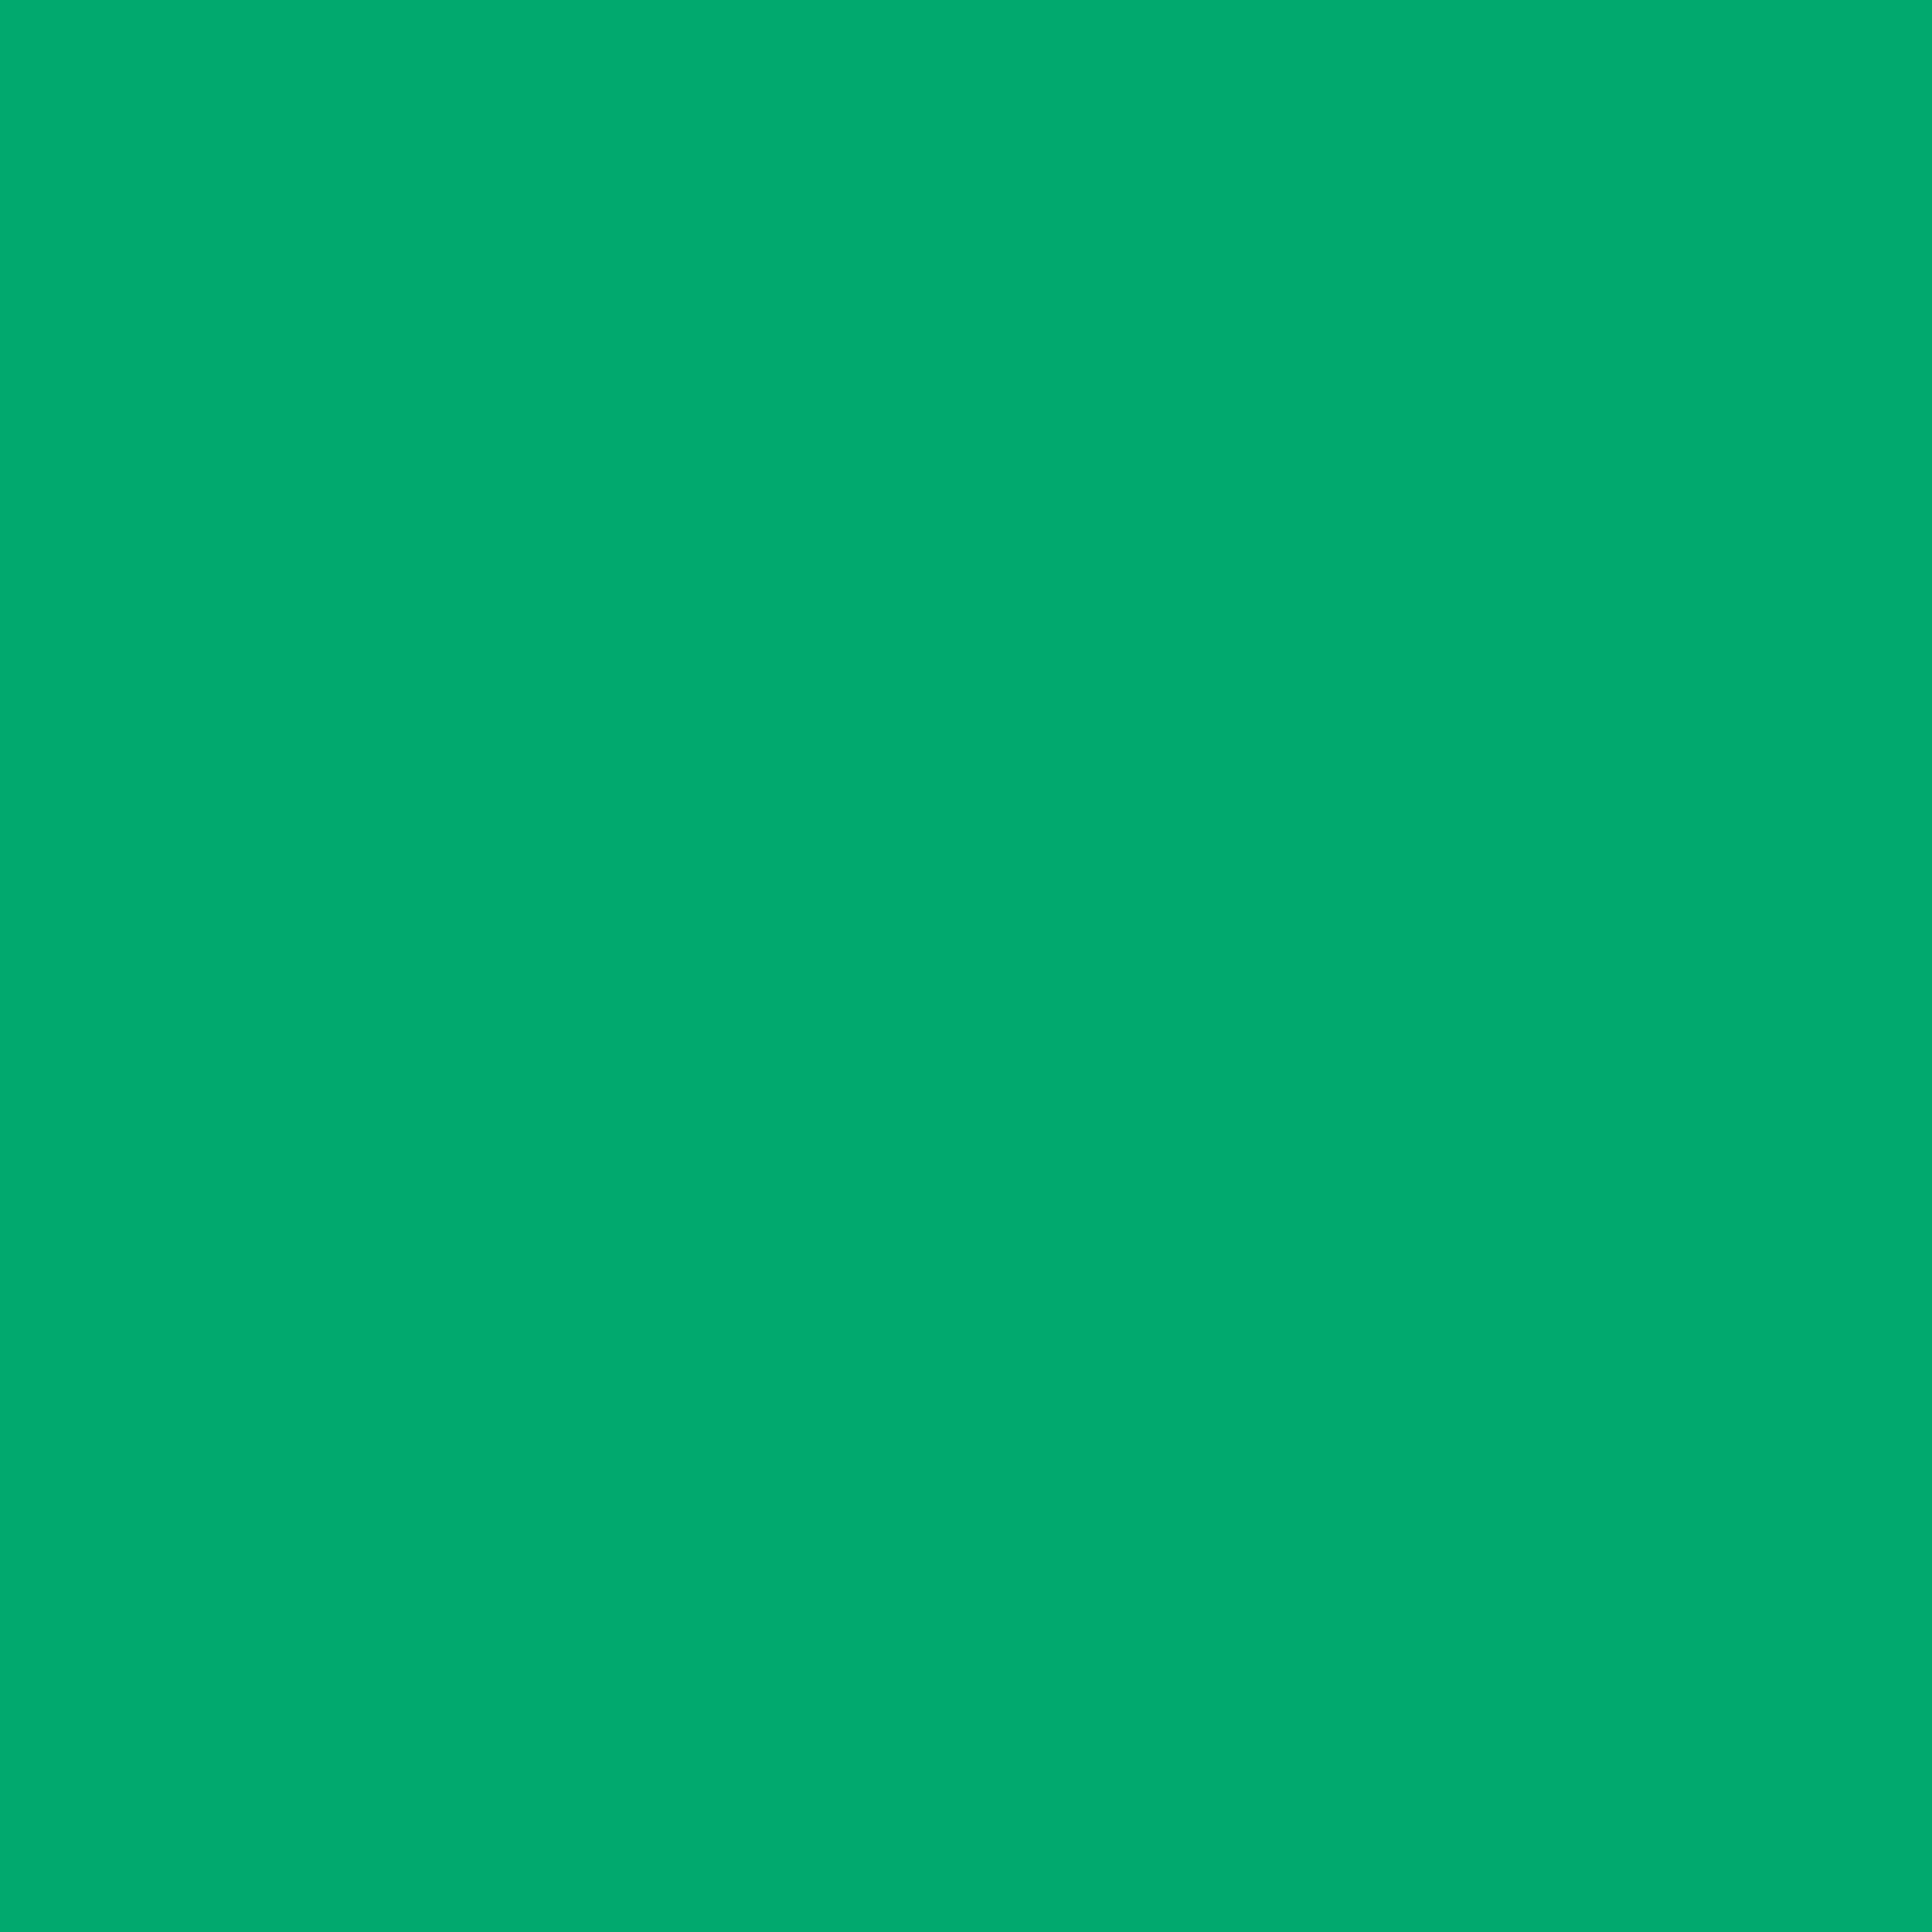 2048x2048 Jade Solid Color Background